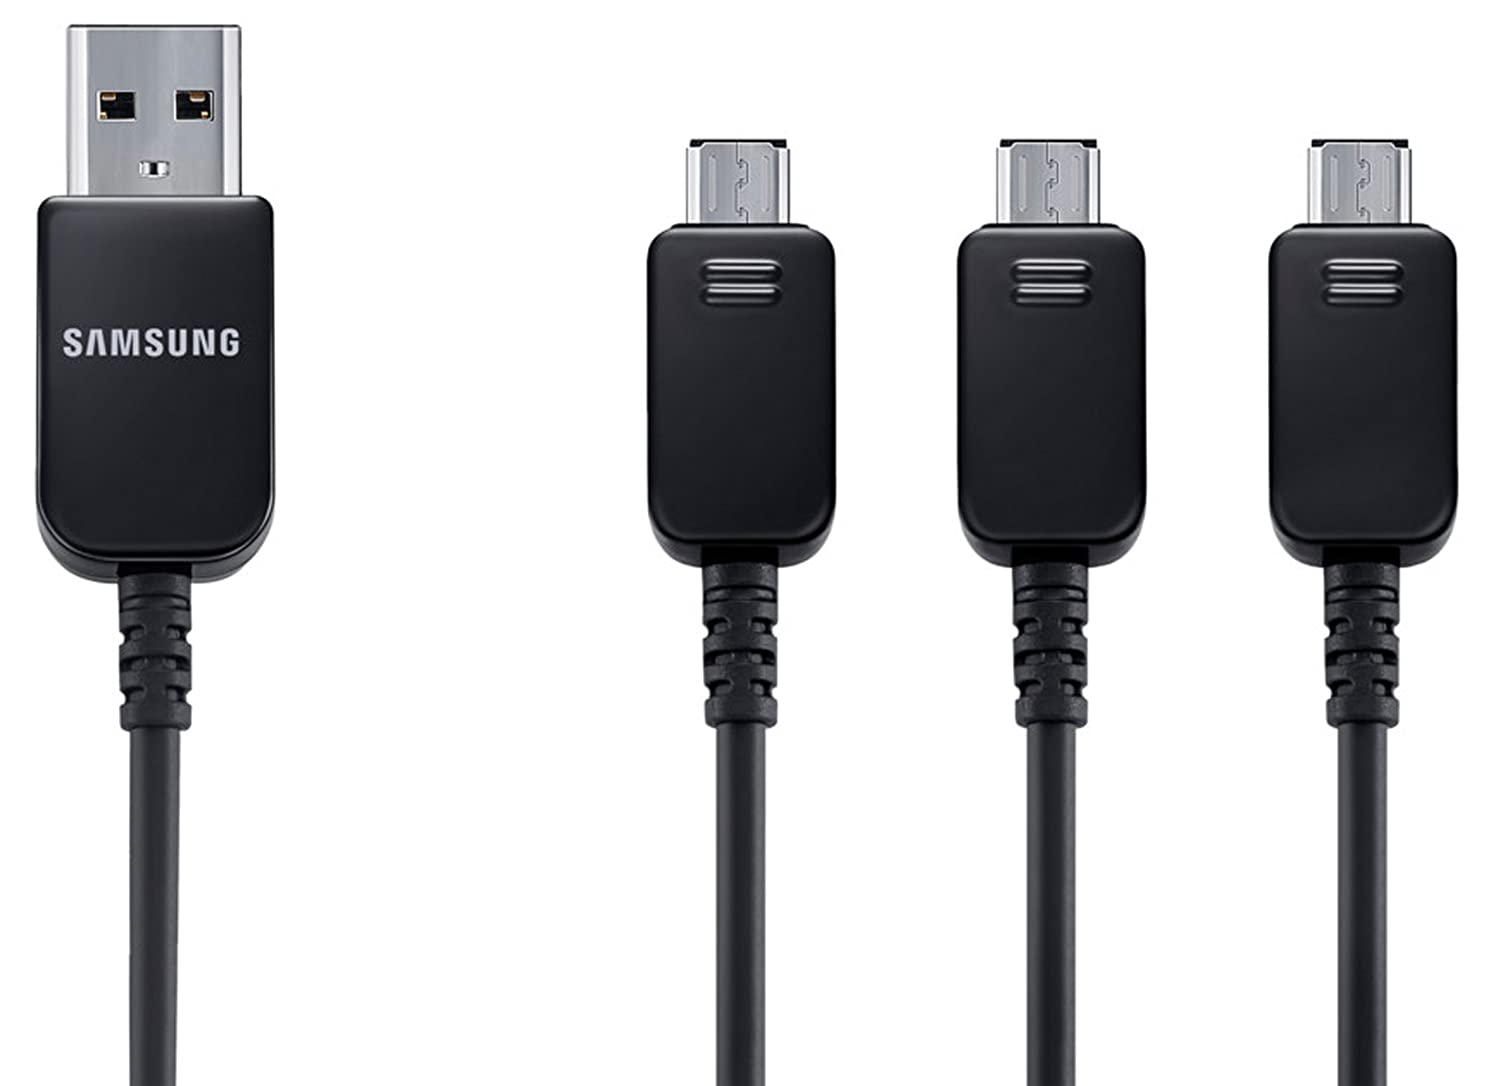 Samsung 3-in-1 Multi Charging Cable Ladekabel Galaxy S5: Amazon.de ...